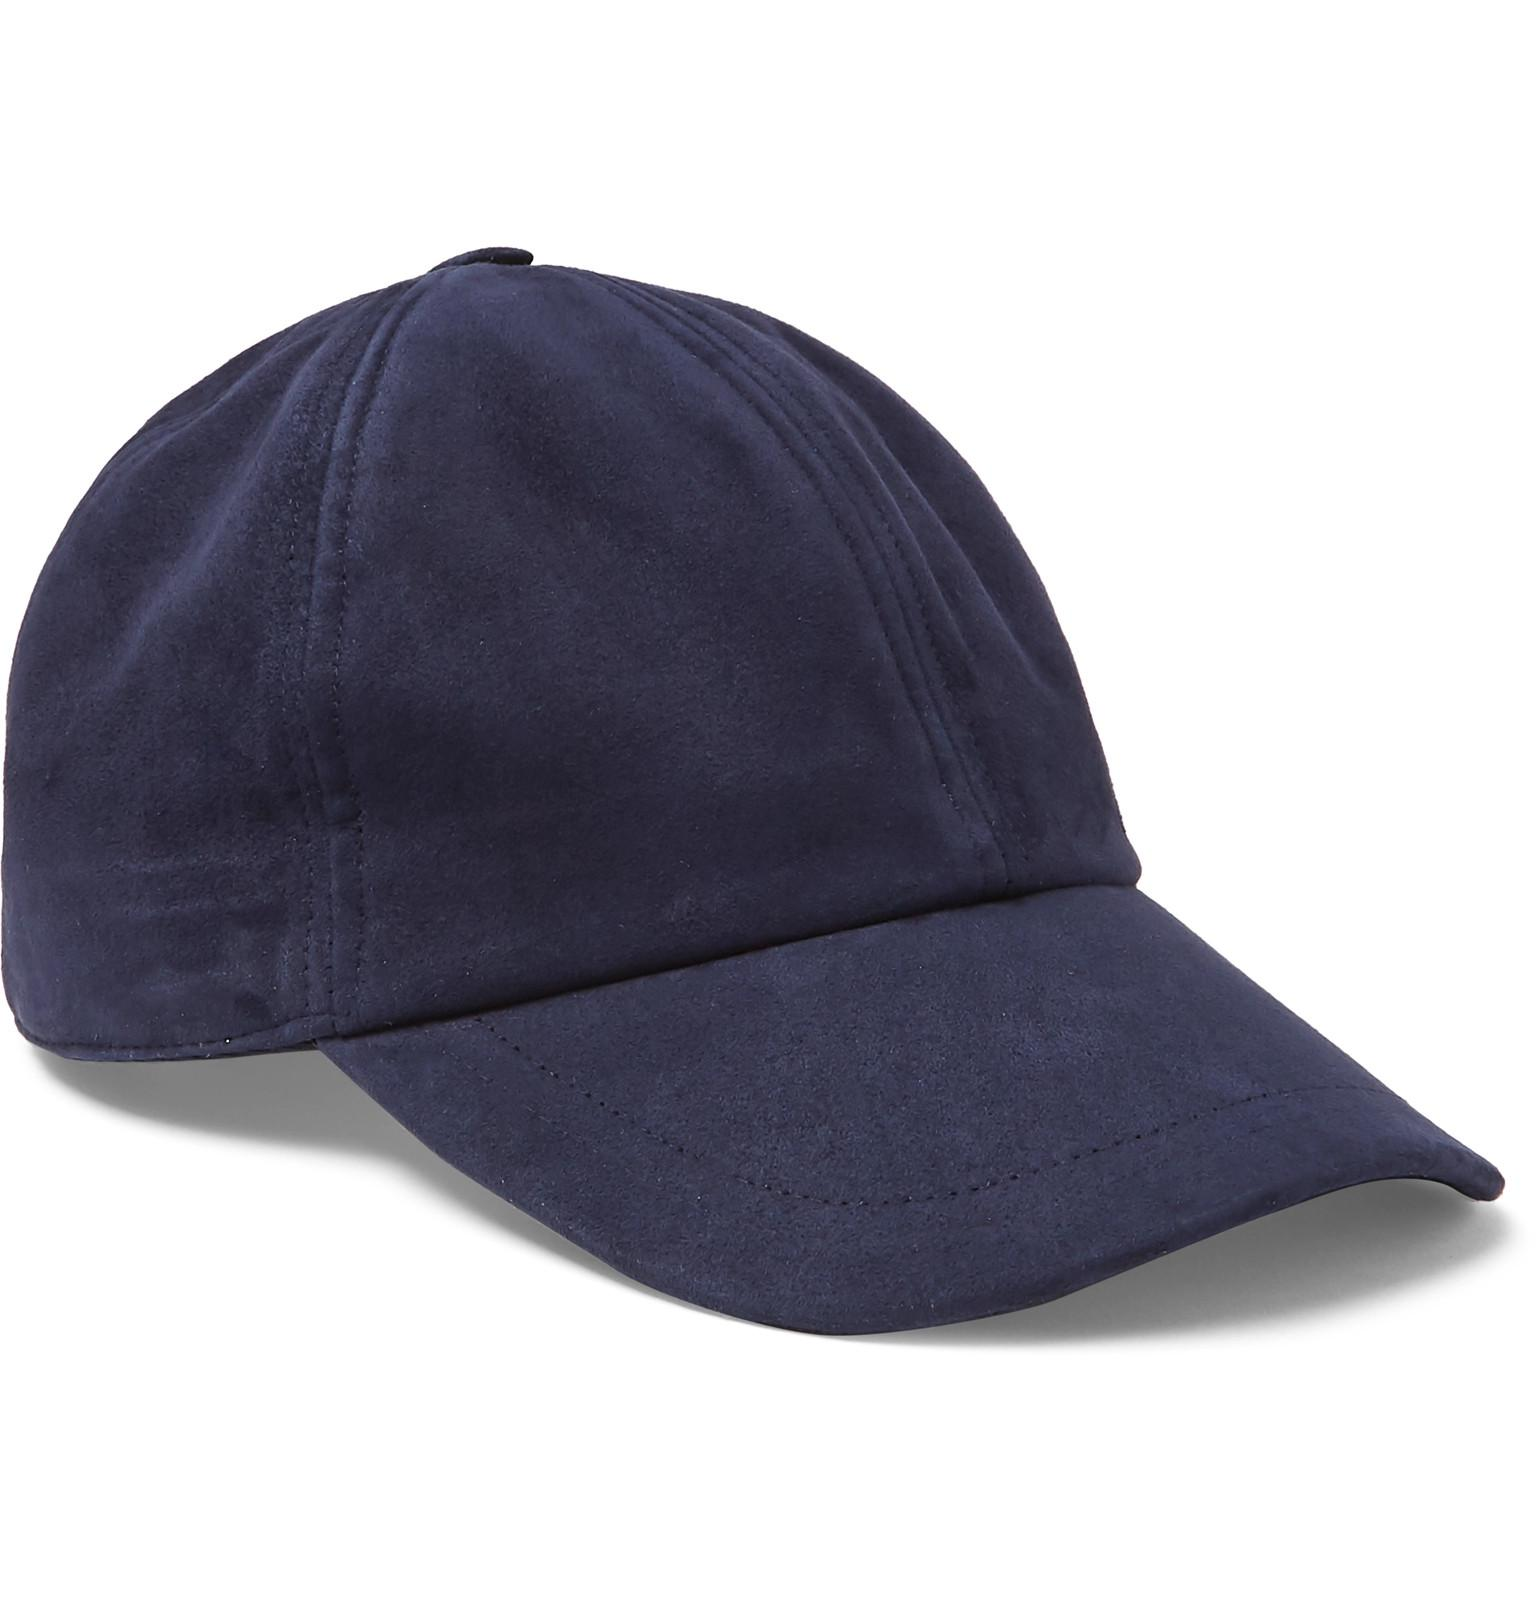 Brioni. Men s Blue Nubuck Baseball Cap.  580 From MR PORTER 63430153820